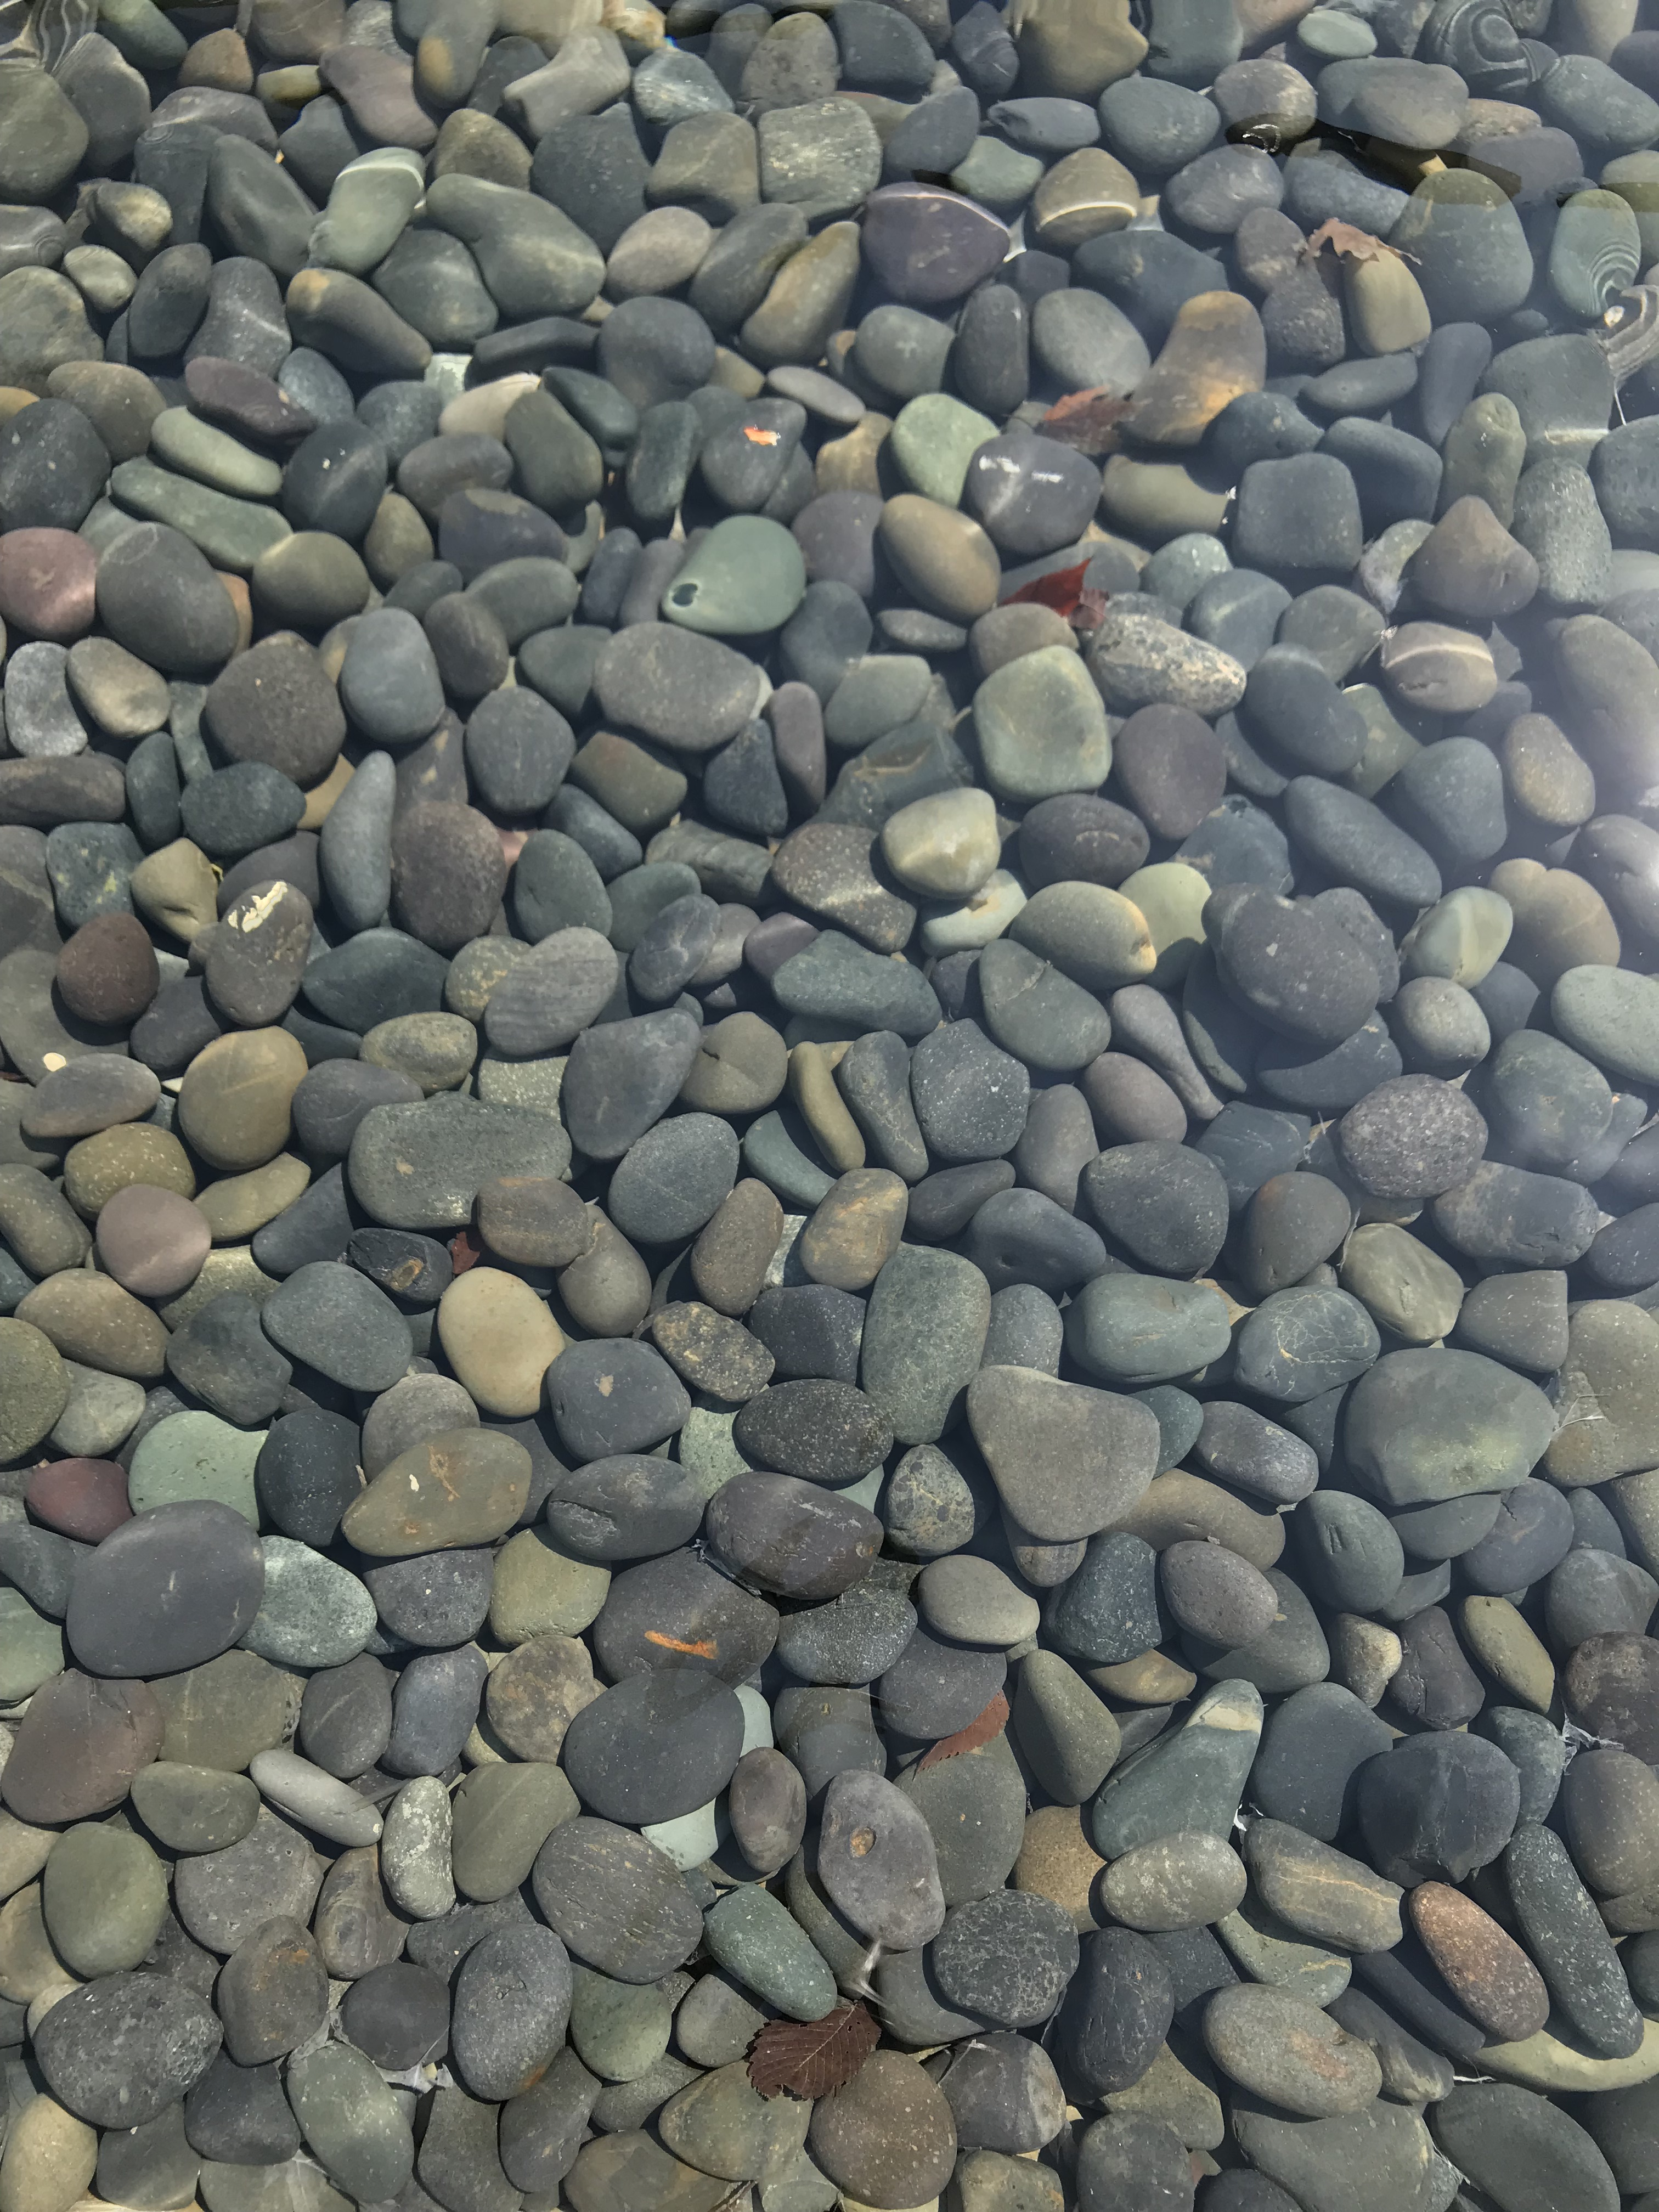 Peaceful clear shallow pool, with smooth stones